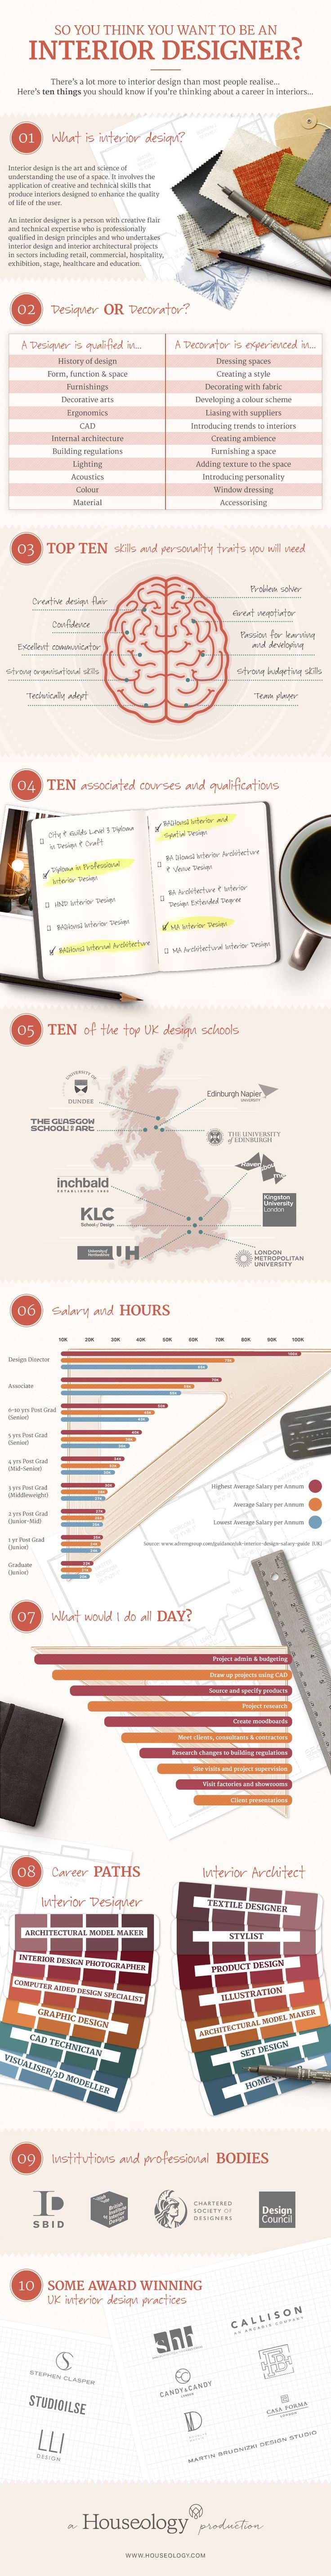 So You Think You Want To Be An Interior Designer Daily Infographic Interior Design Career Interior Design Diy Interior Design Guide